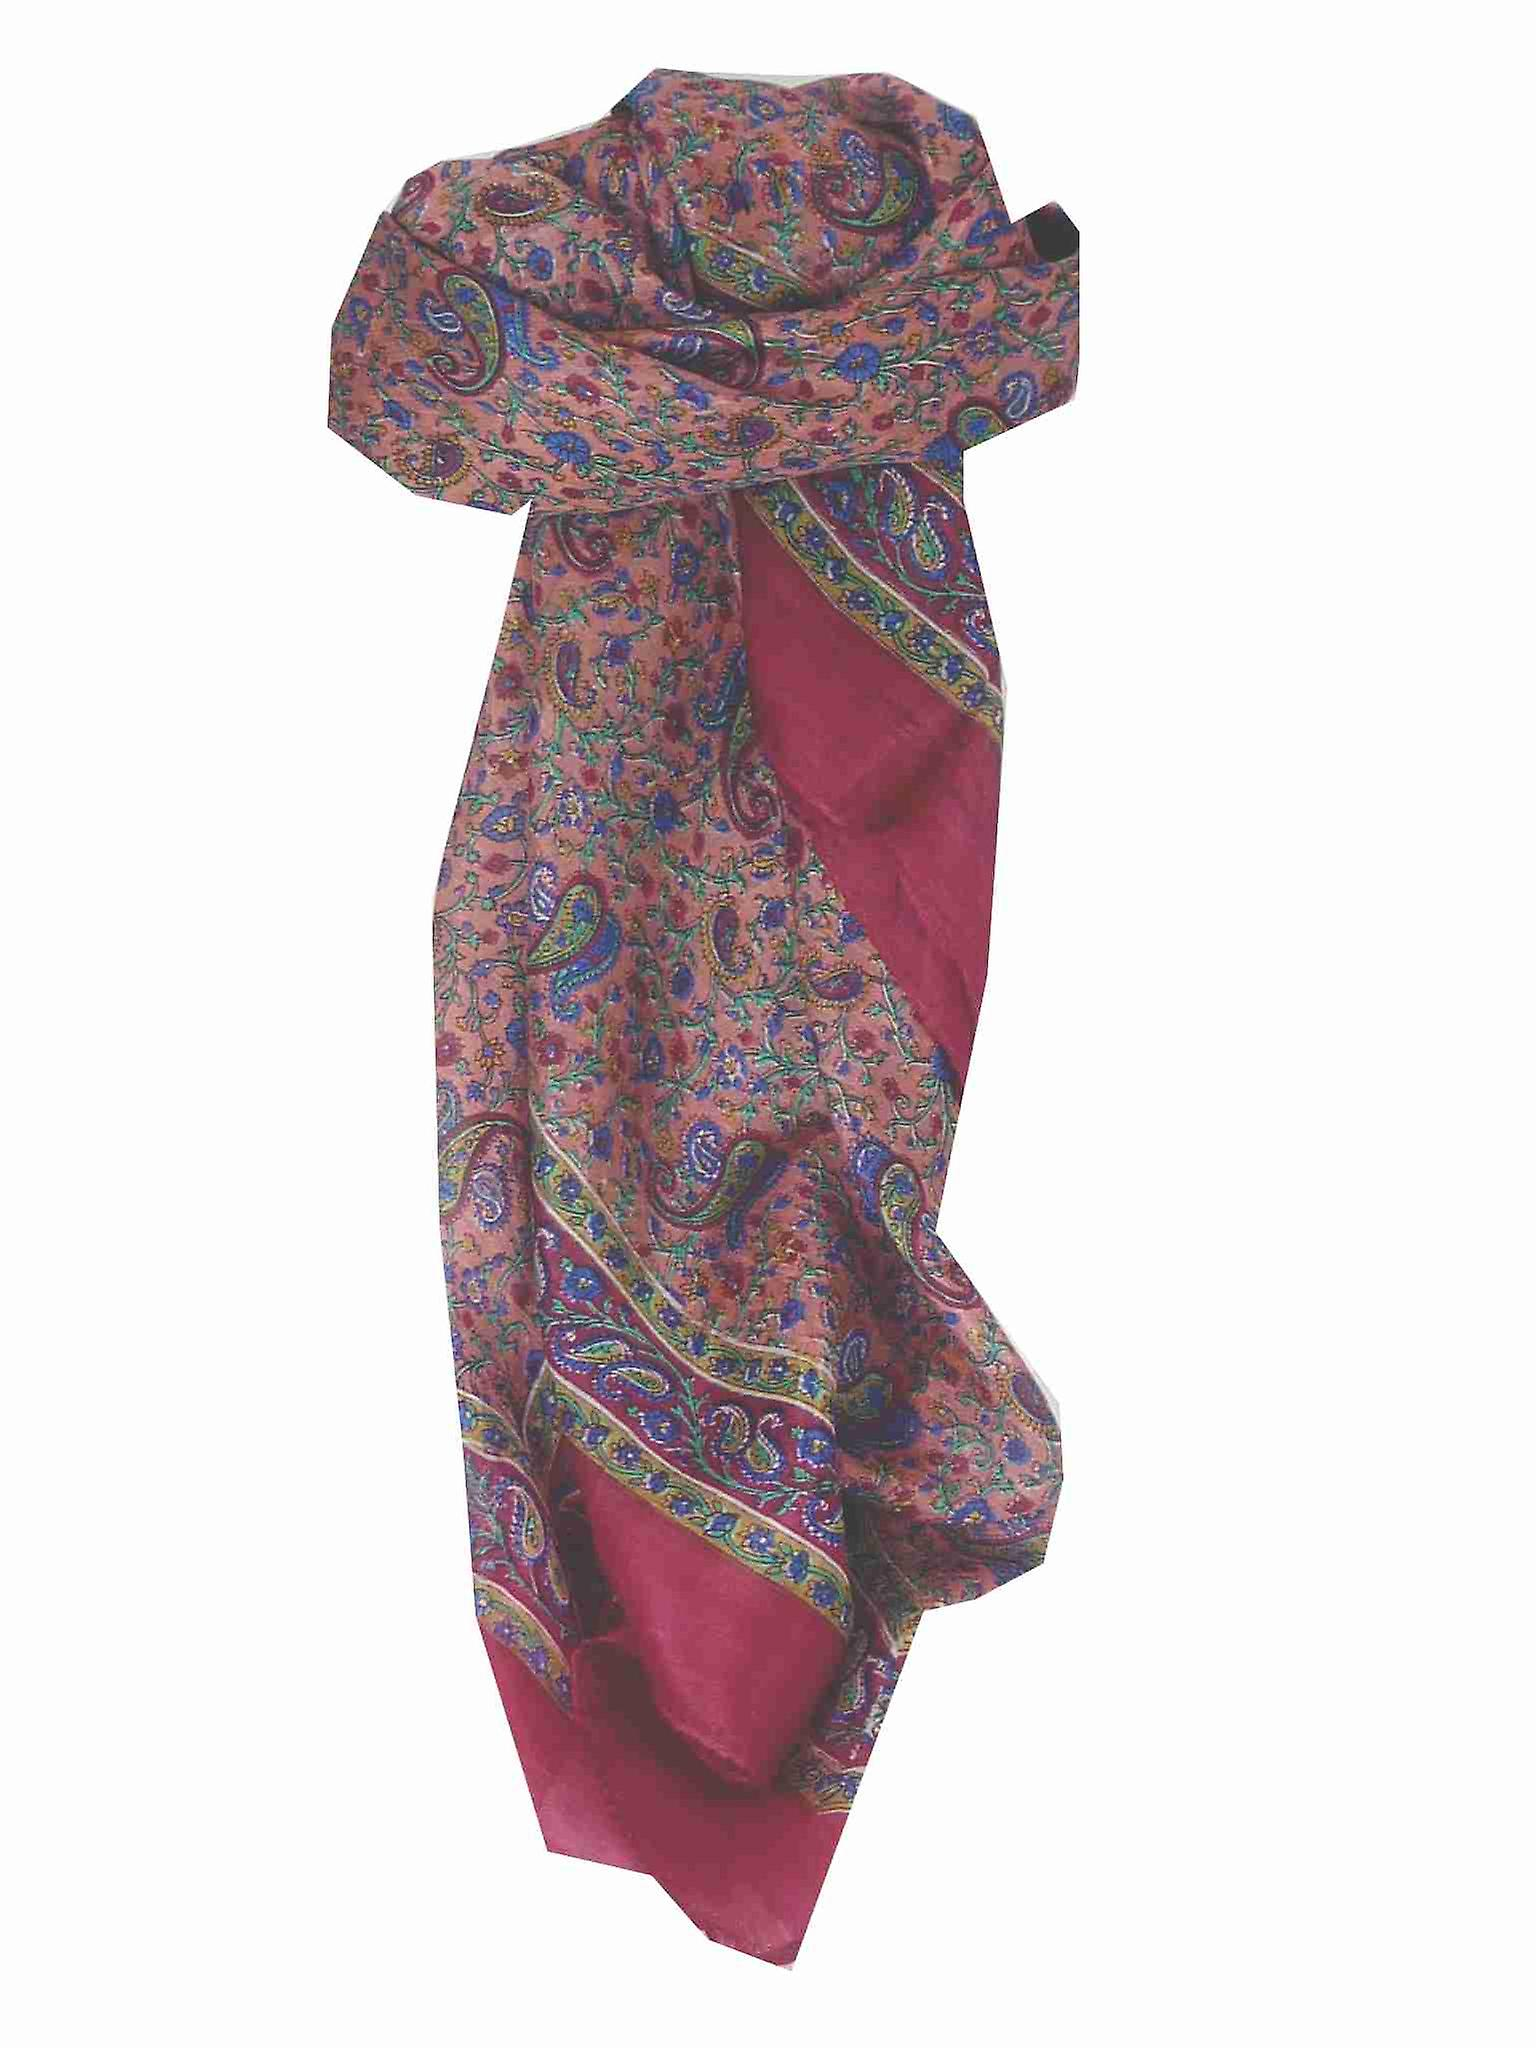 Mulberry Silk Traditional Square Scarf Abbe Pink by Pashmina & Silk